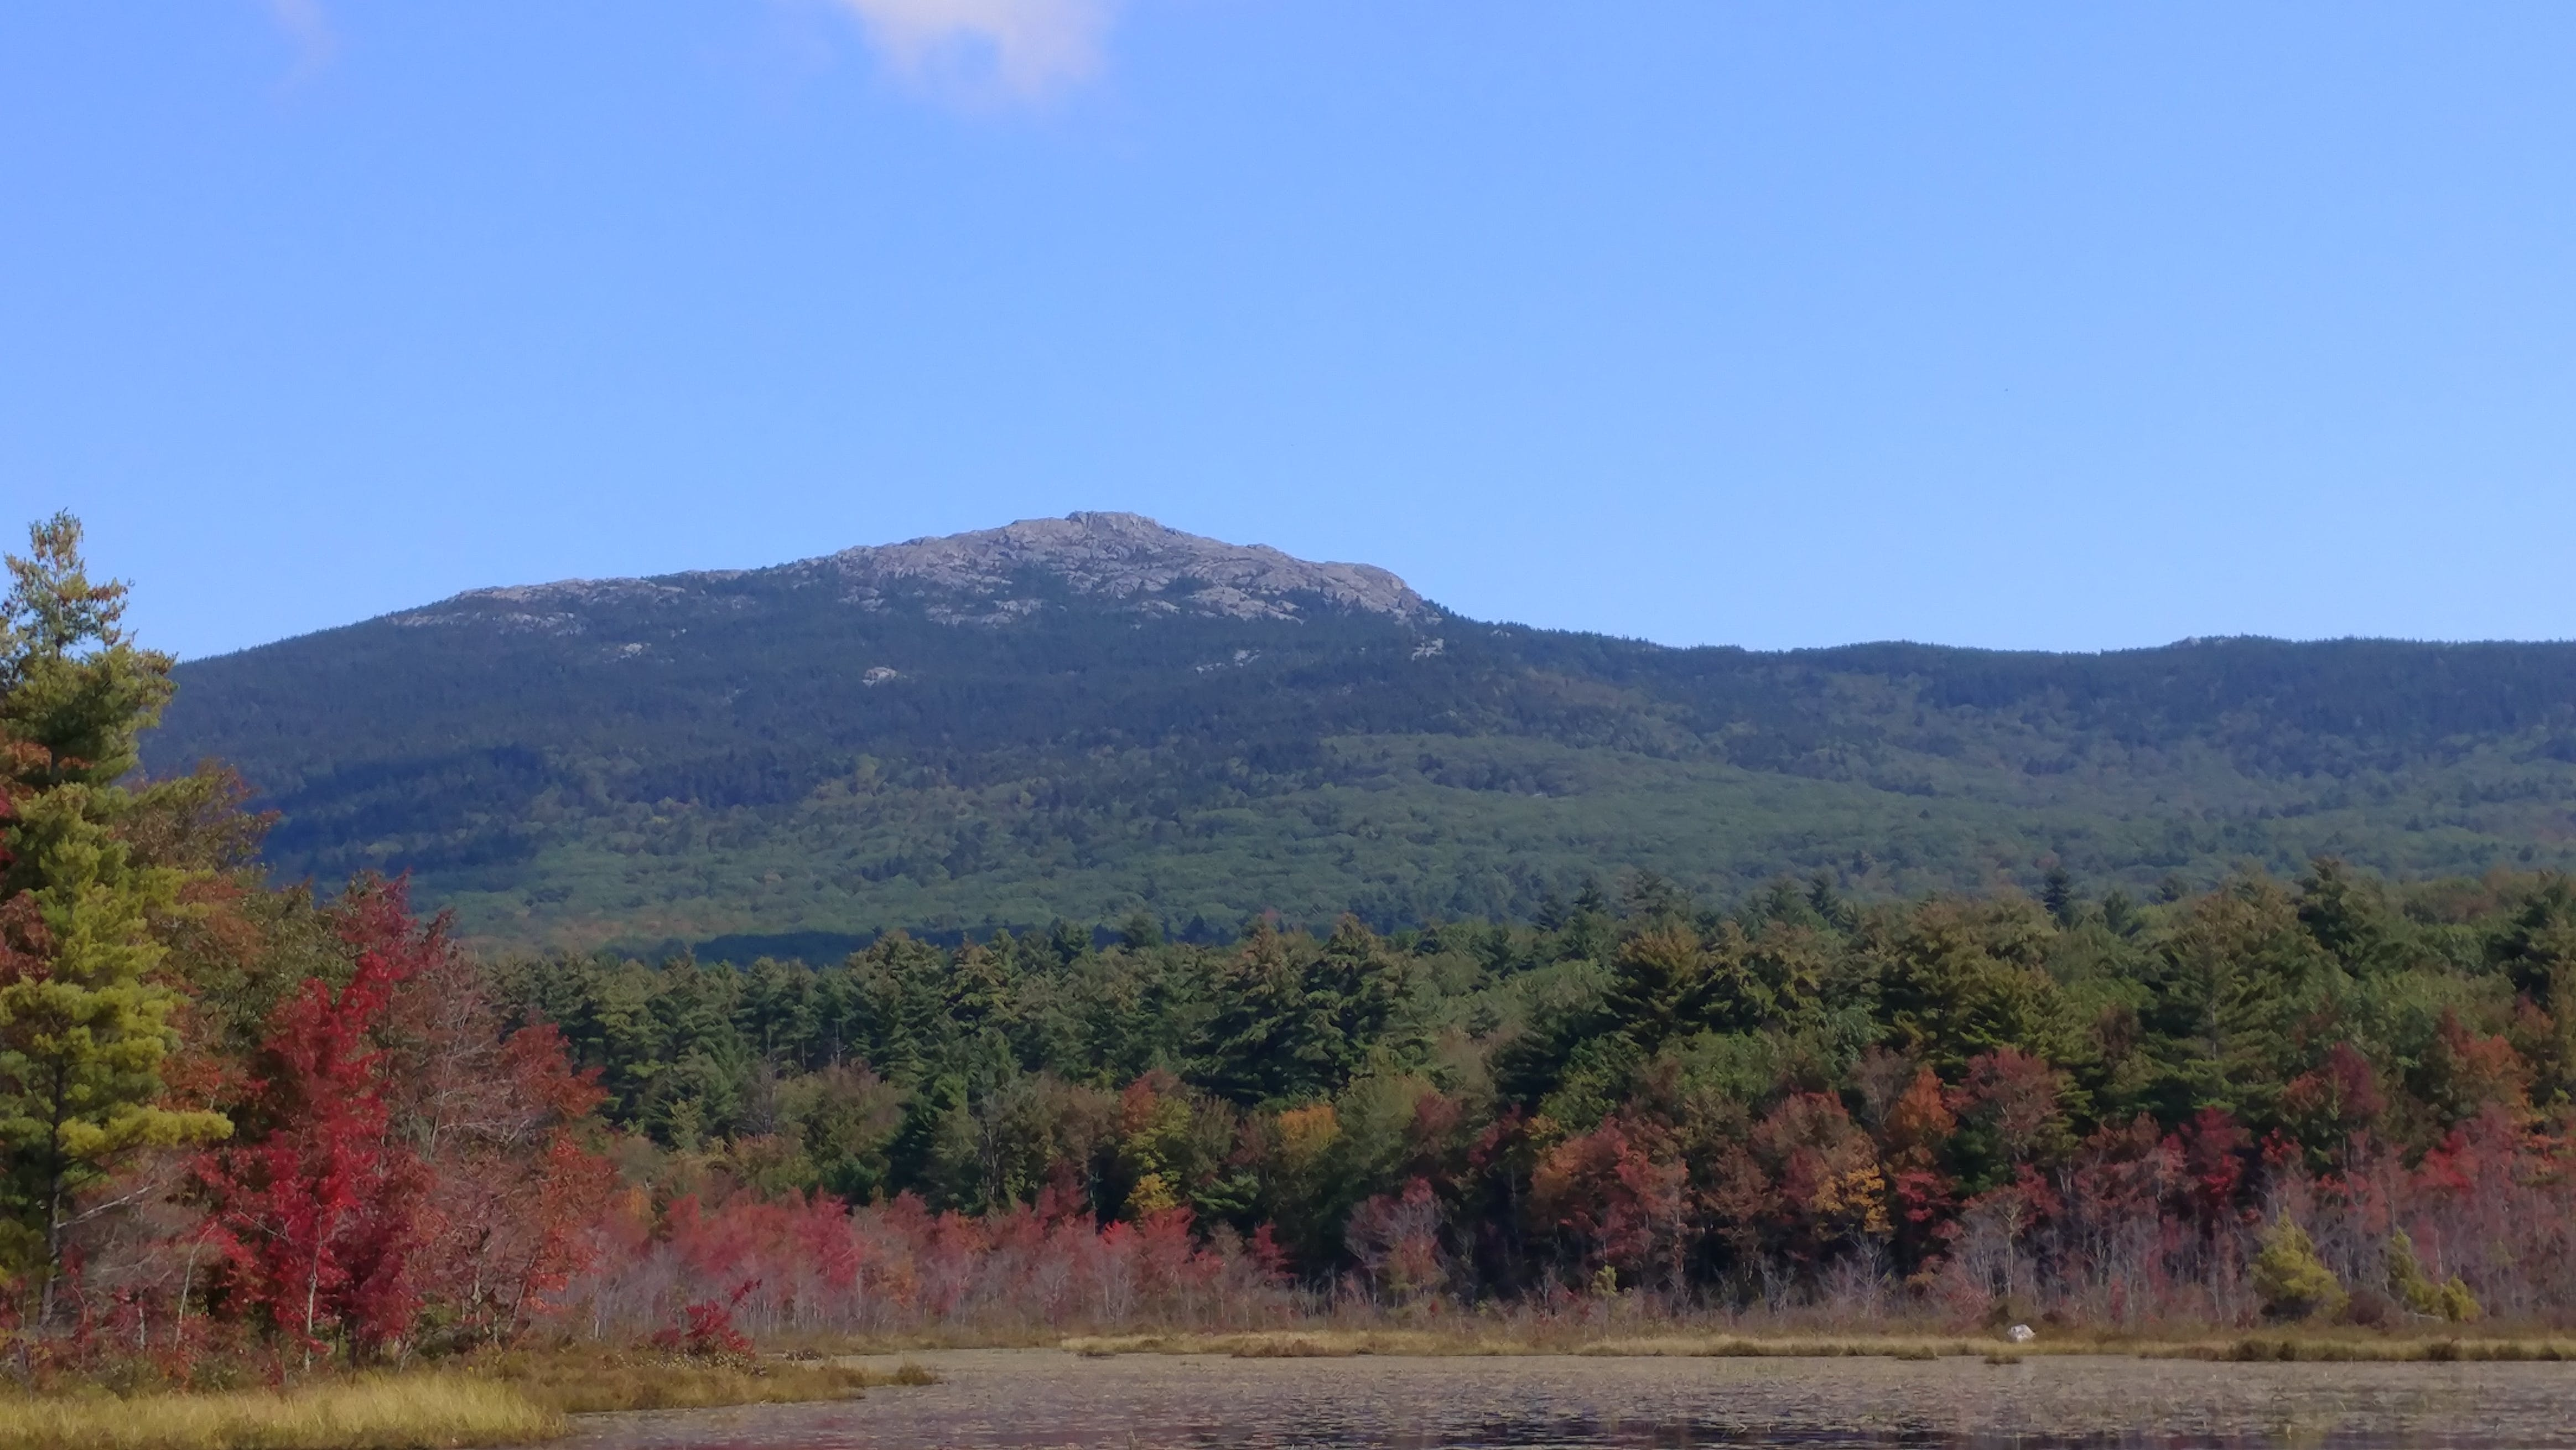 Views of beautiful Mt. Monadnock